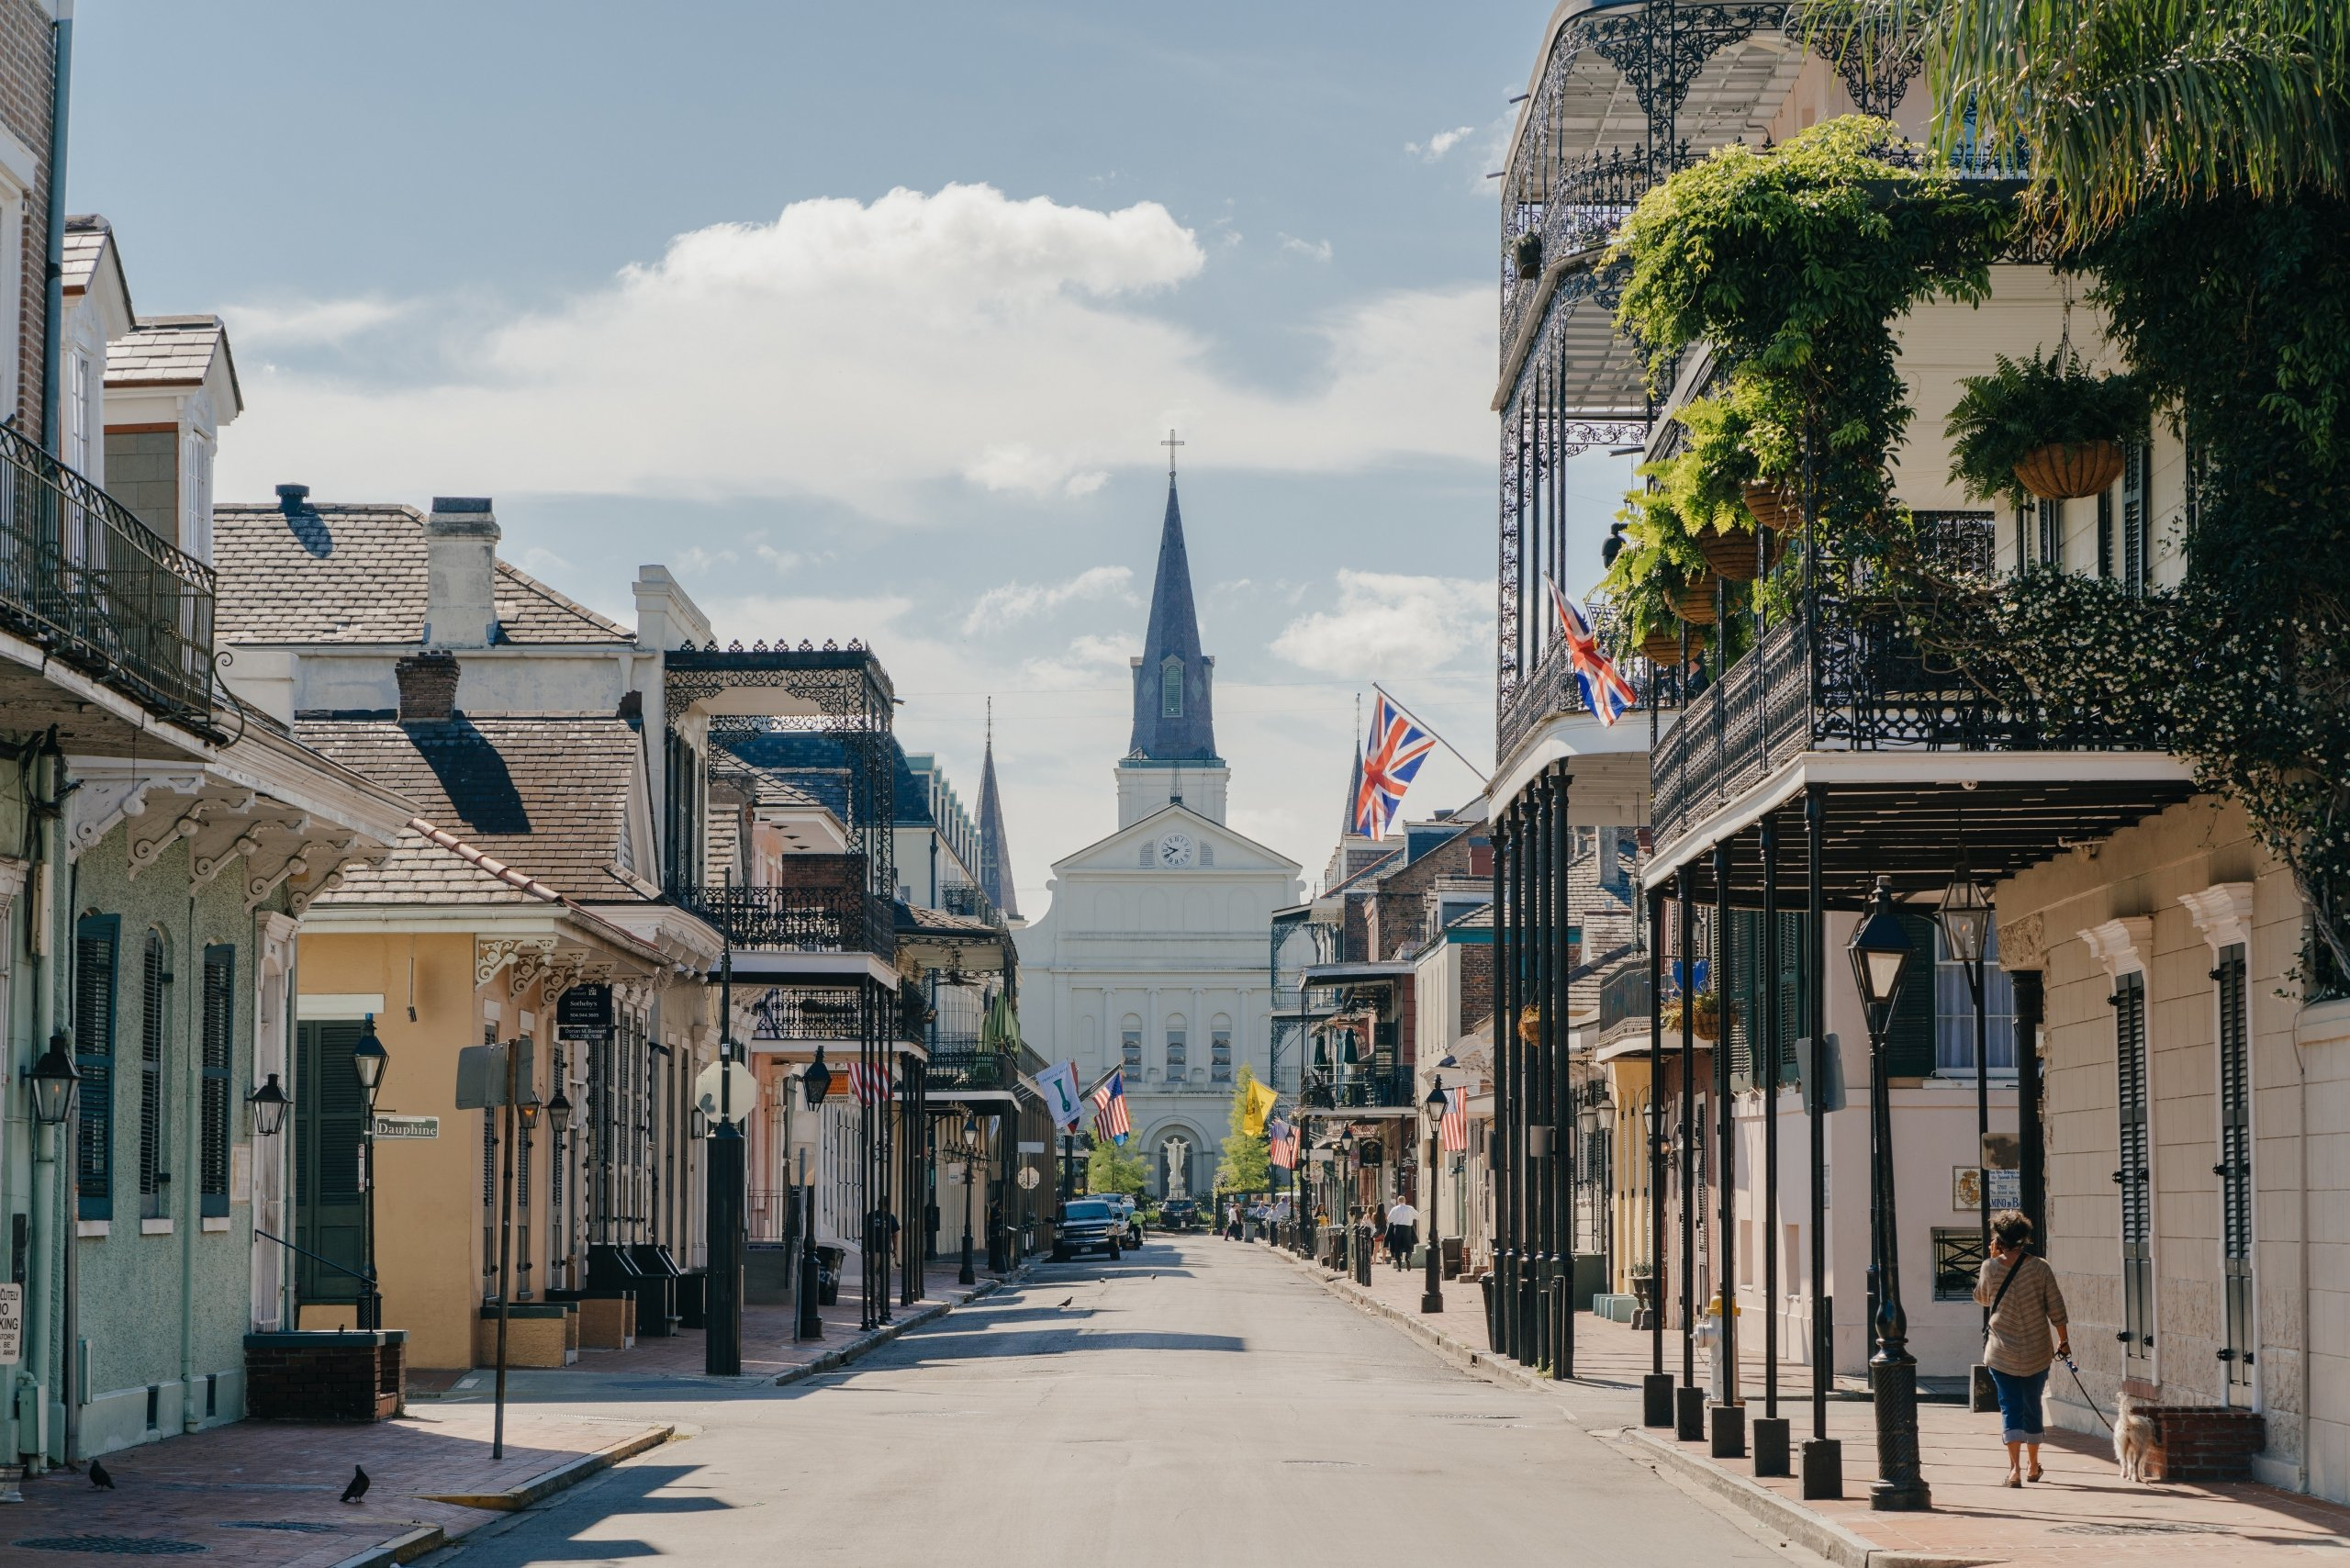 A New Orleans street that runs down toward a cathedral